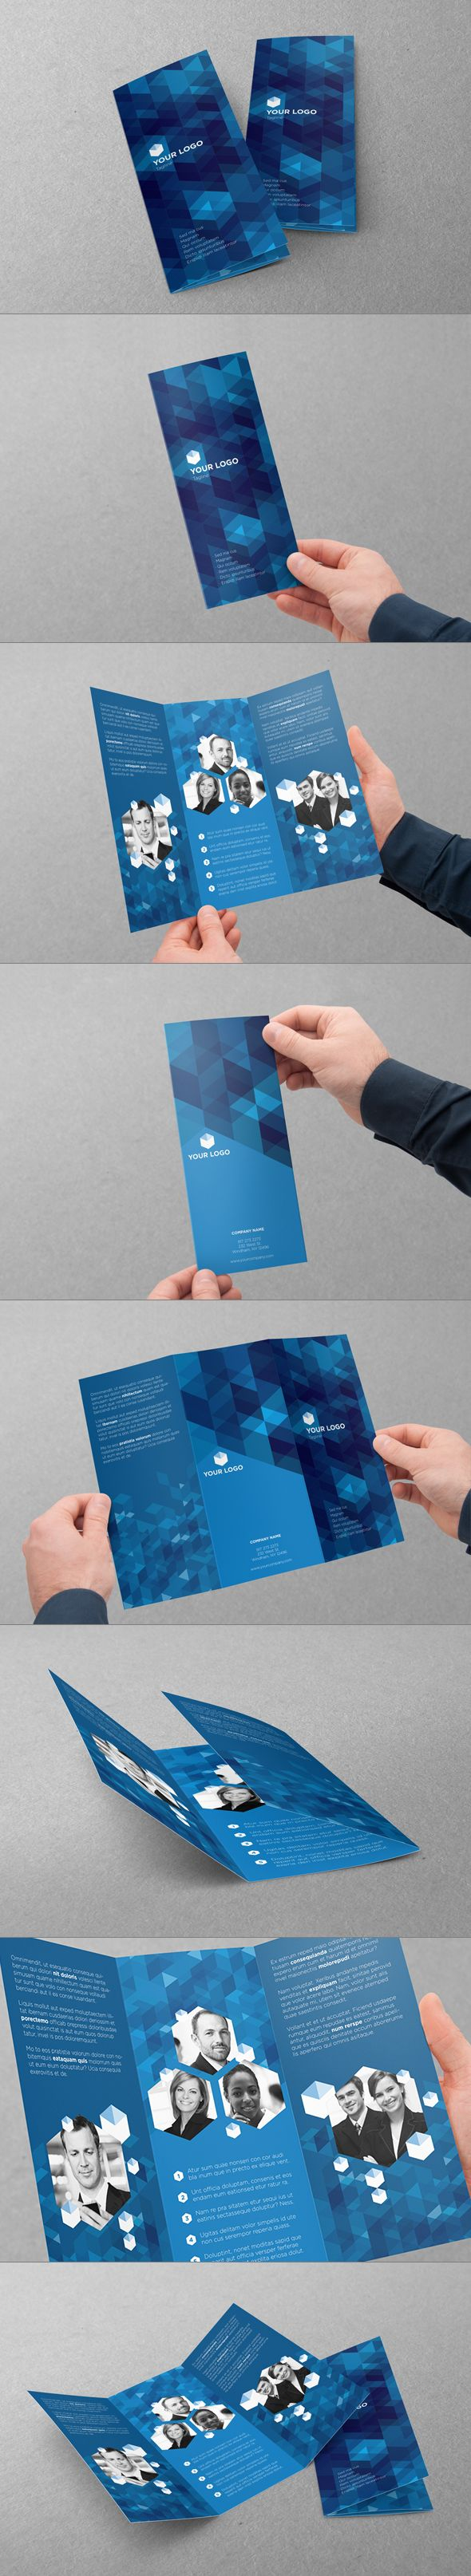 Trifold Design by Abra Design, via Behance #design #brochure #trifold